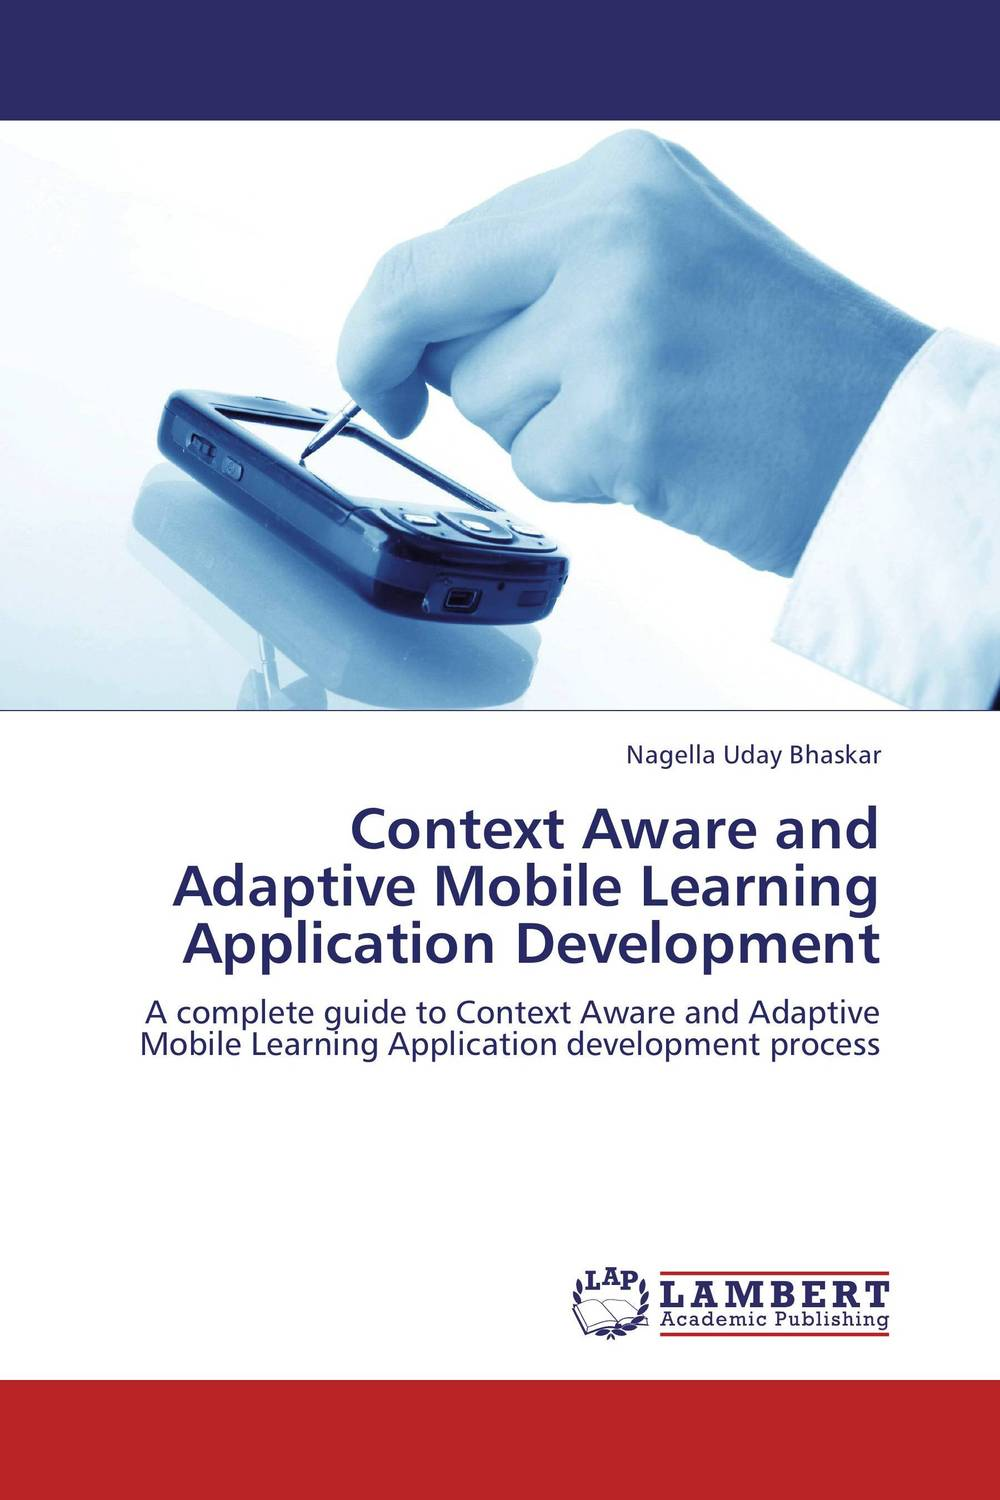 Context Aware and Adaptive Mobile Learning Application Development mastering mobile learning